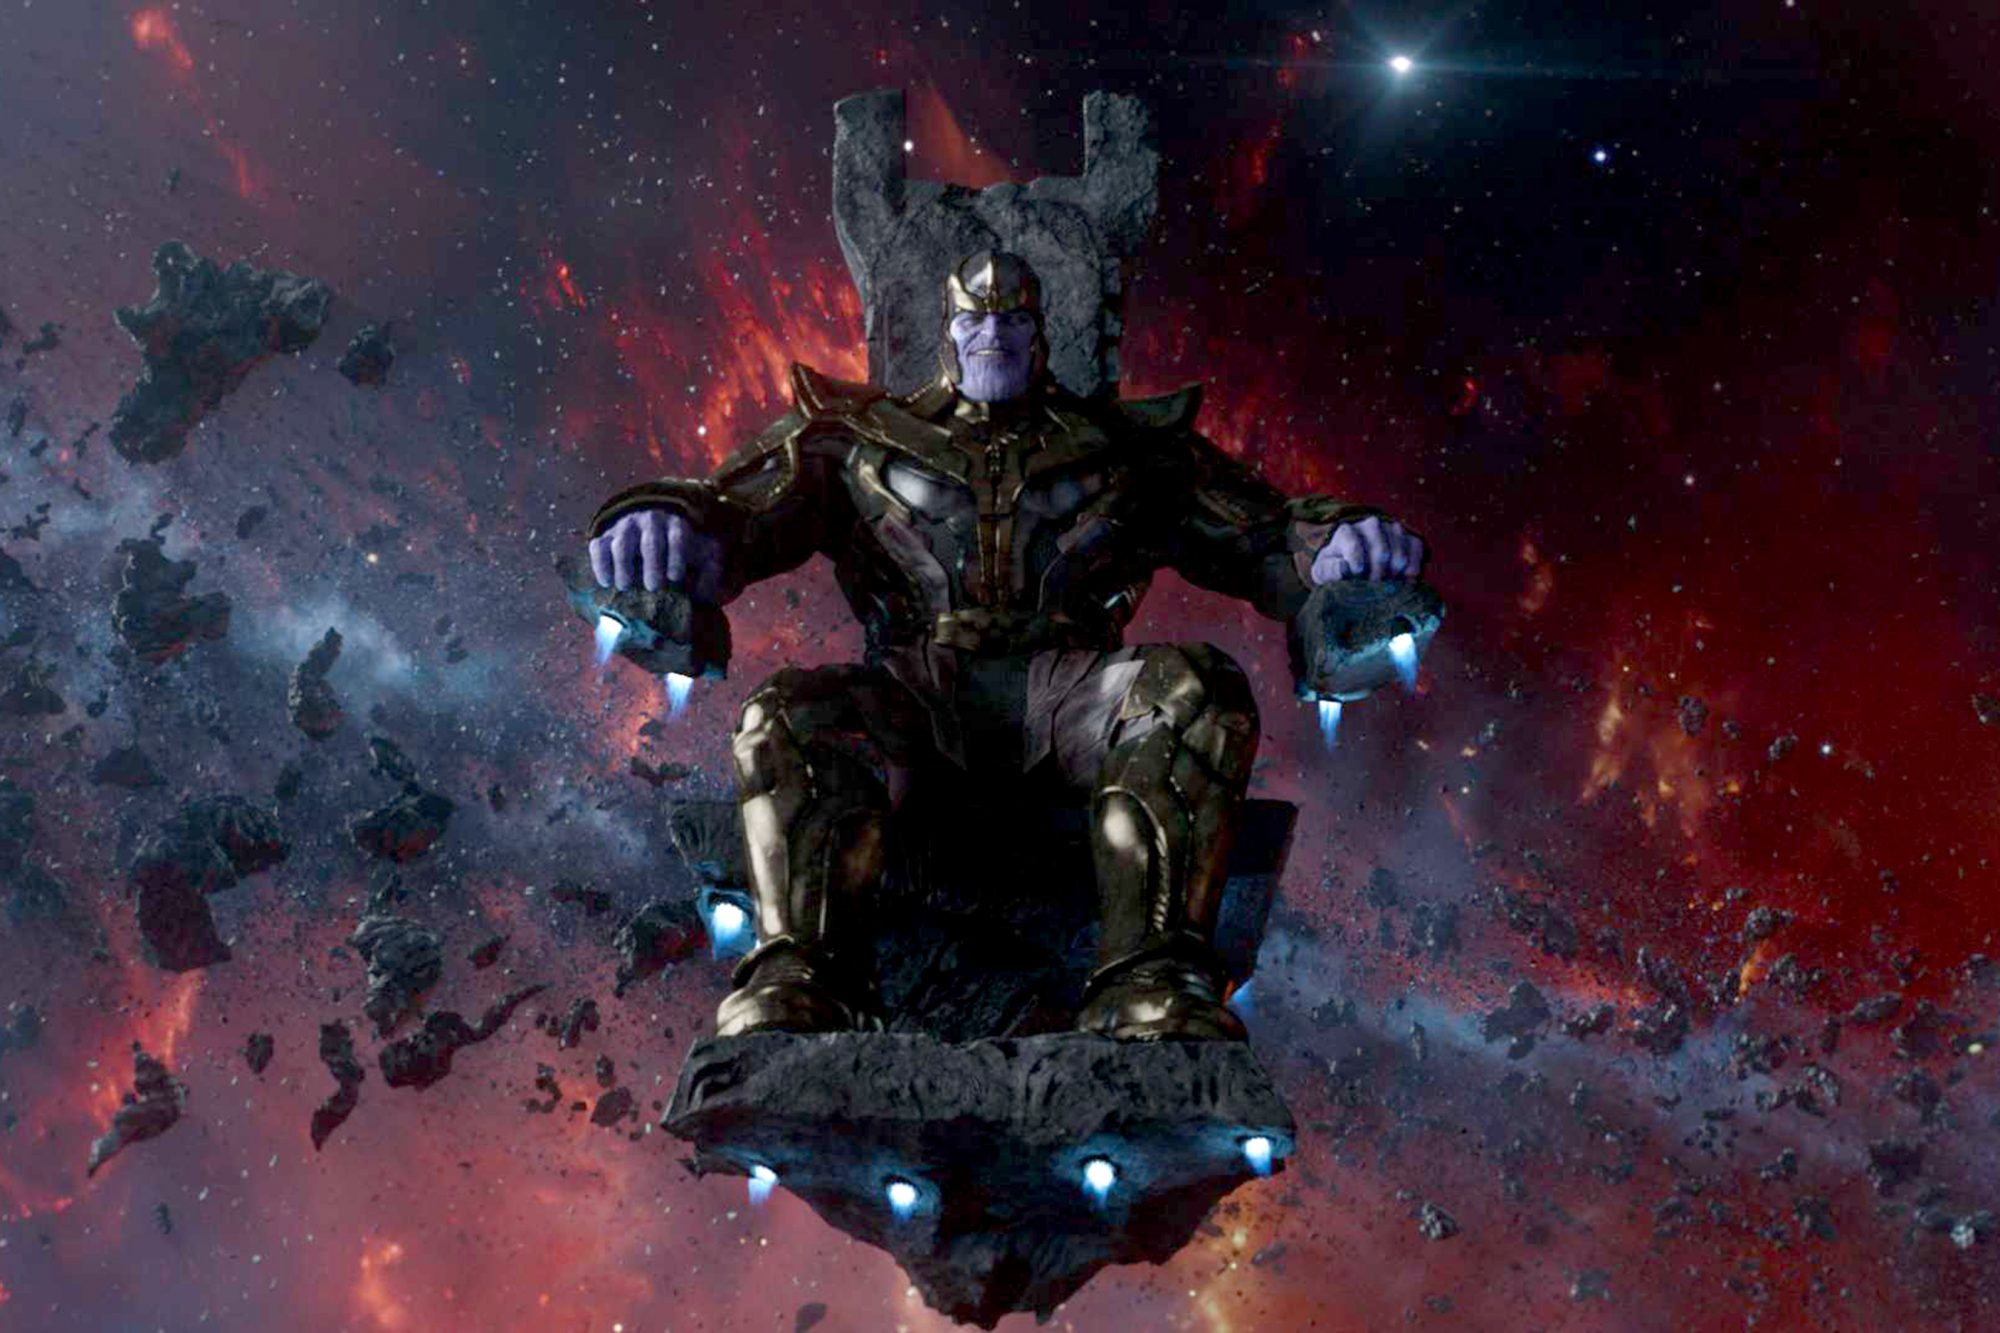 GUARDIANS-OF-THE-GALAXY,thanos